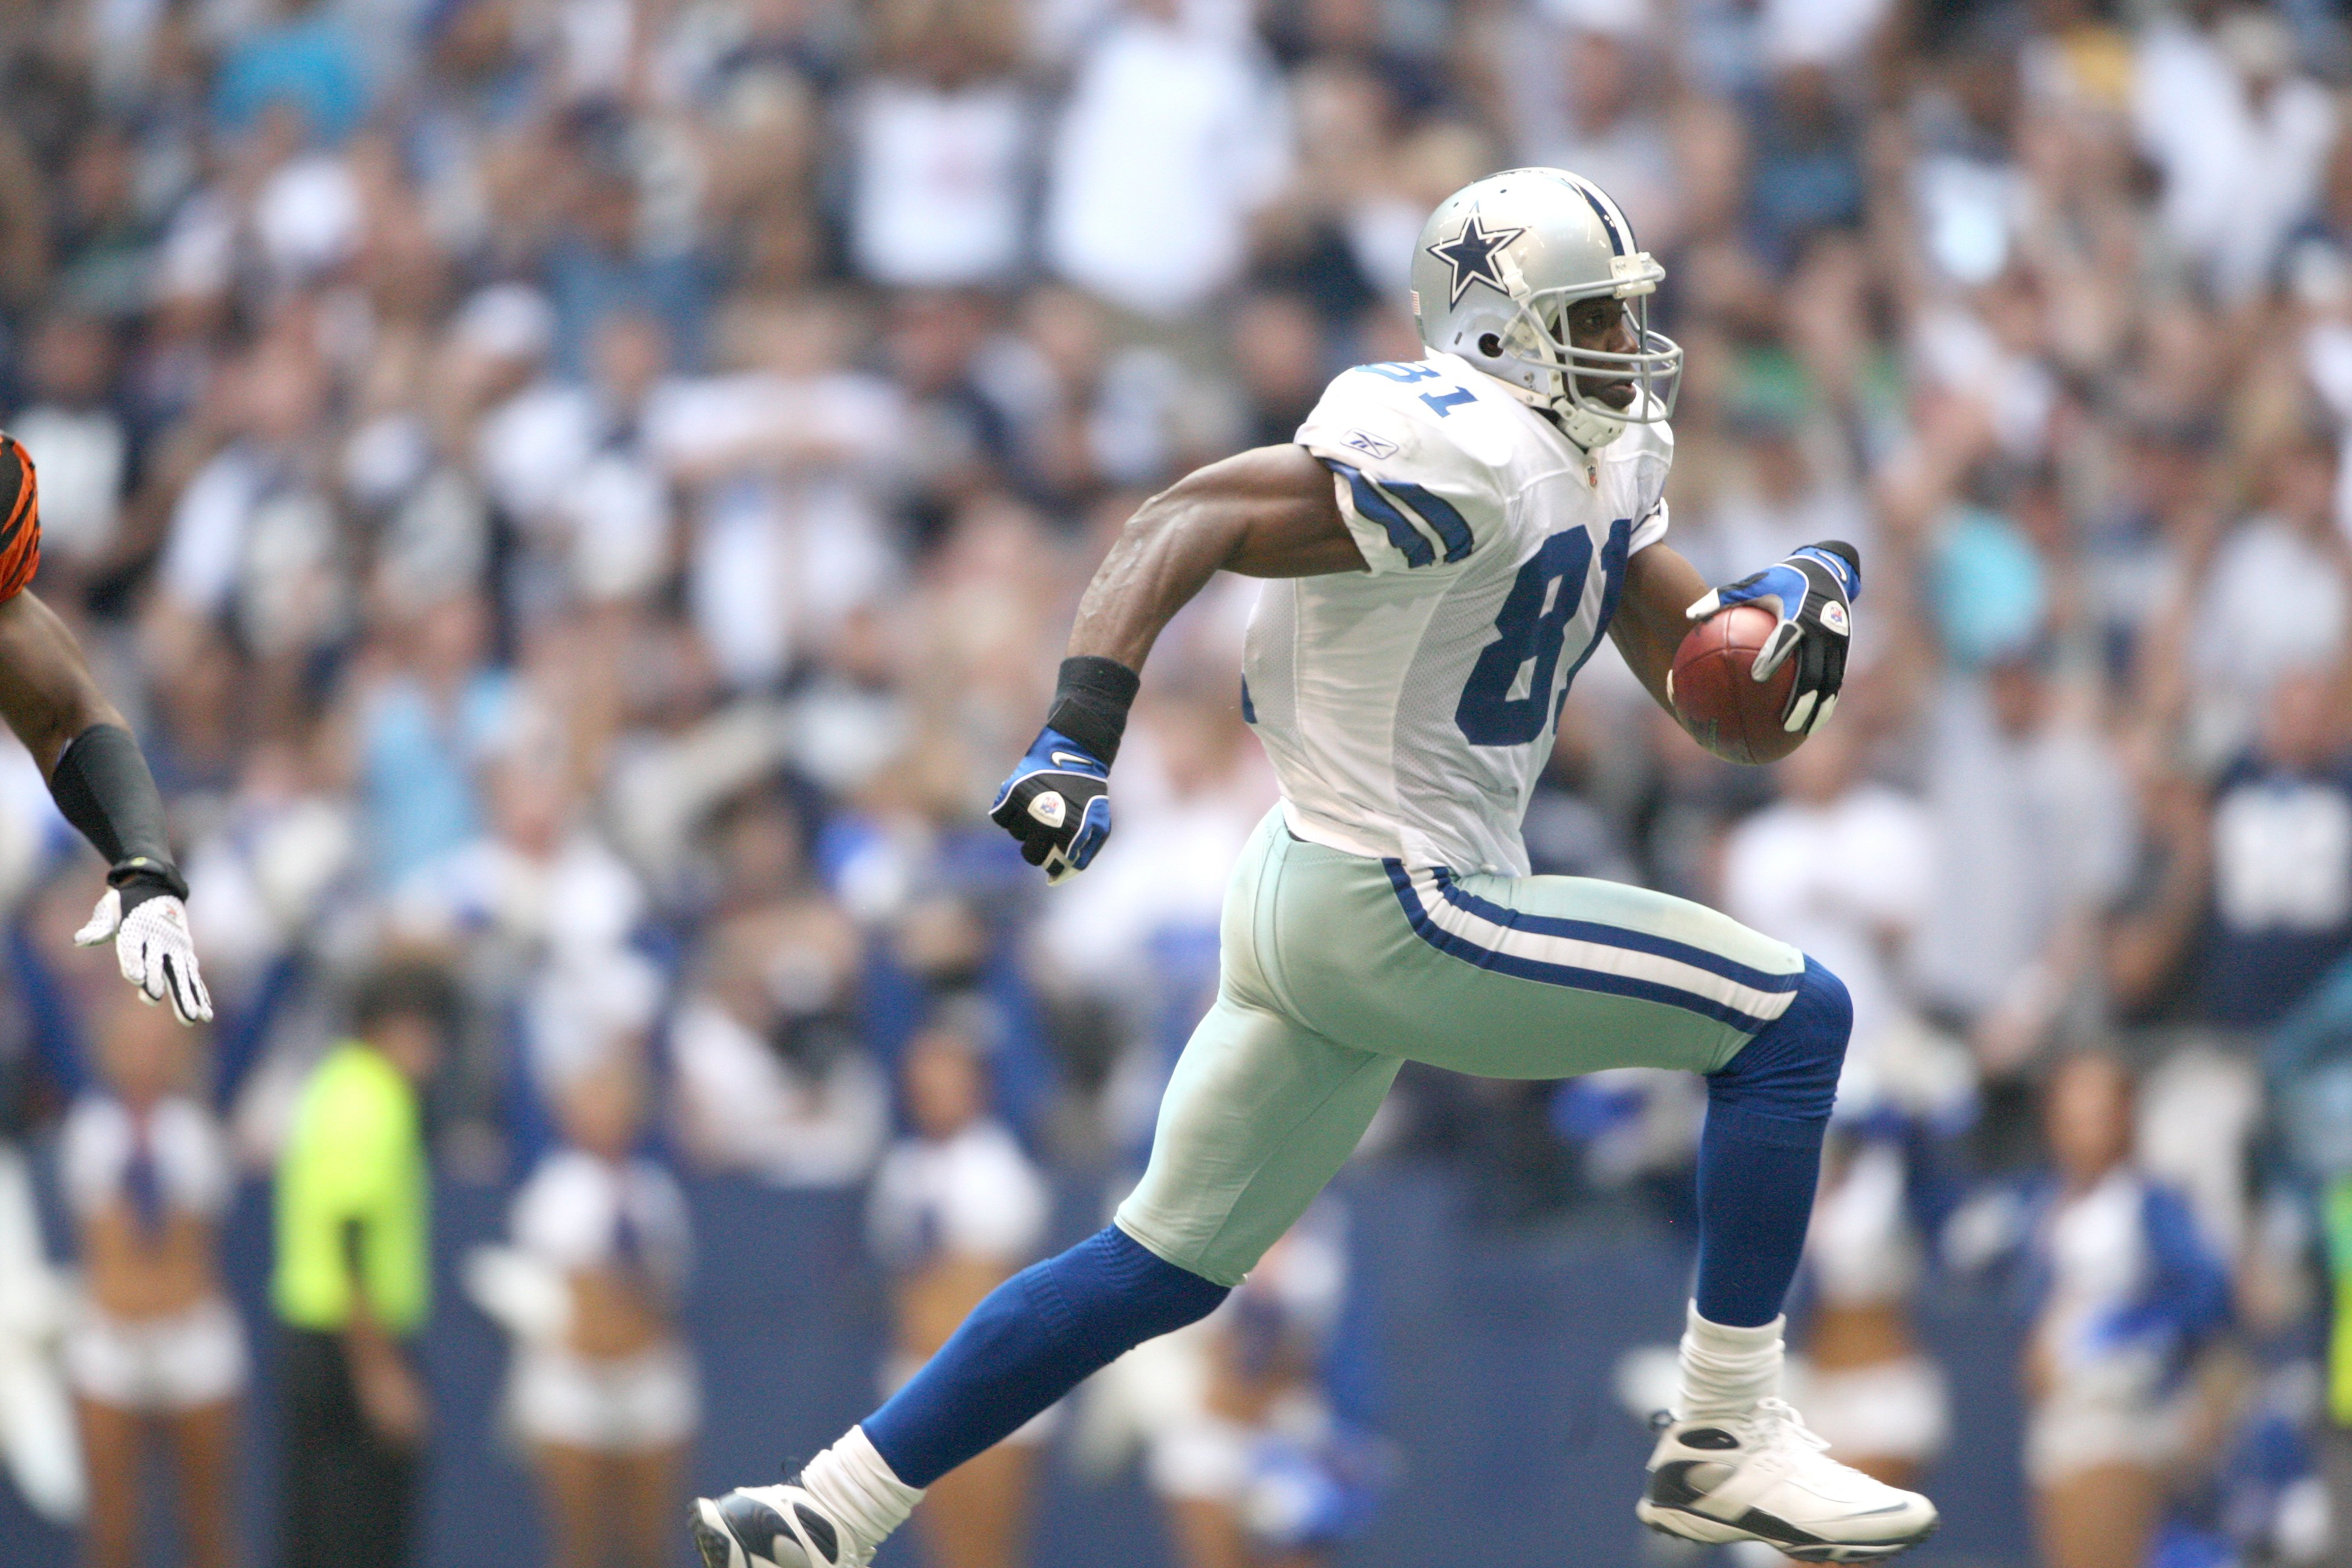 Terrell Owens says he would play for Los Angeles Rams